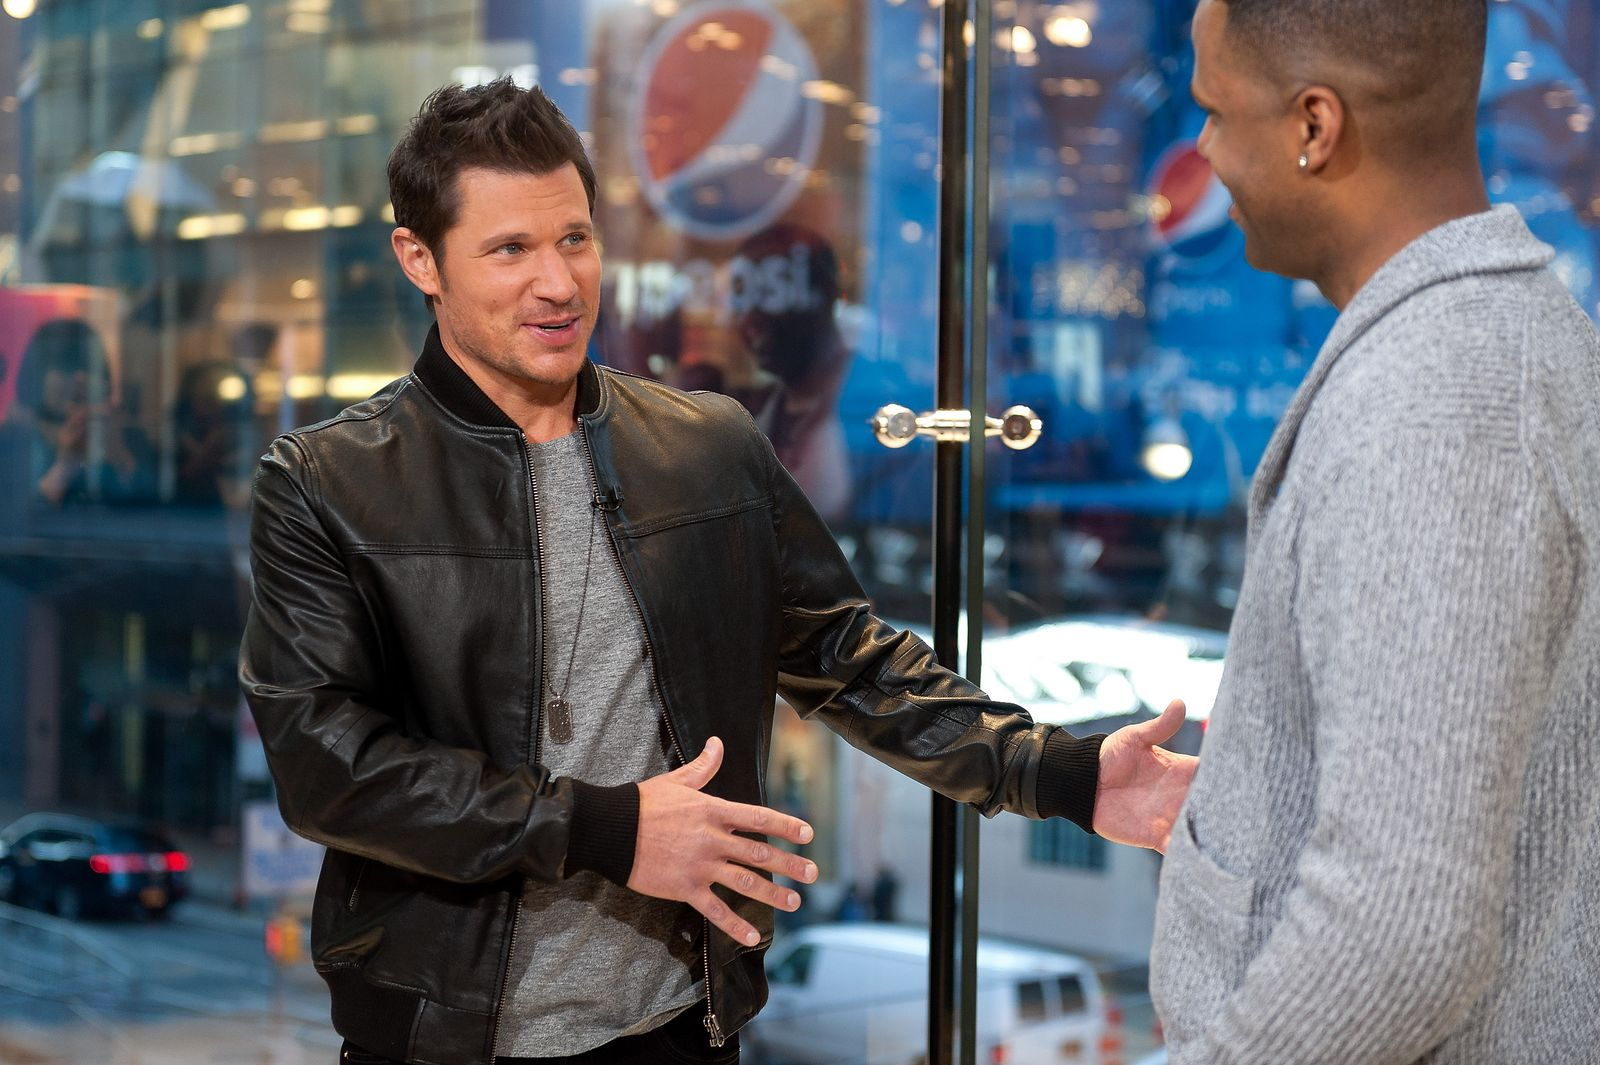 Nick Lachey, who has rights to one of Ohio's marijuana farms, speaks to Extra.